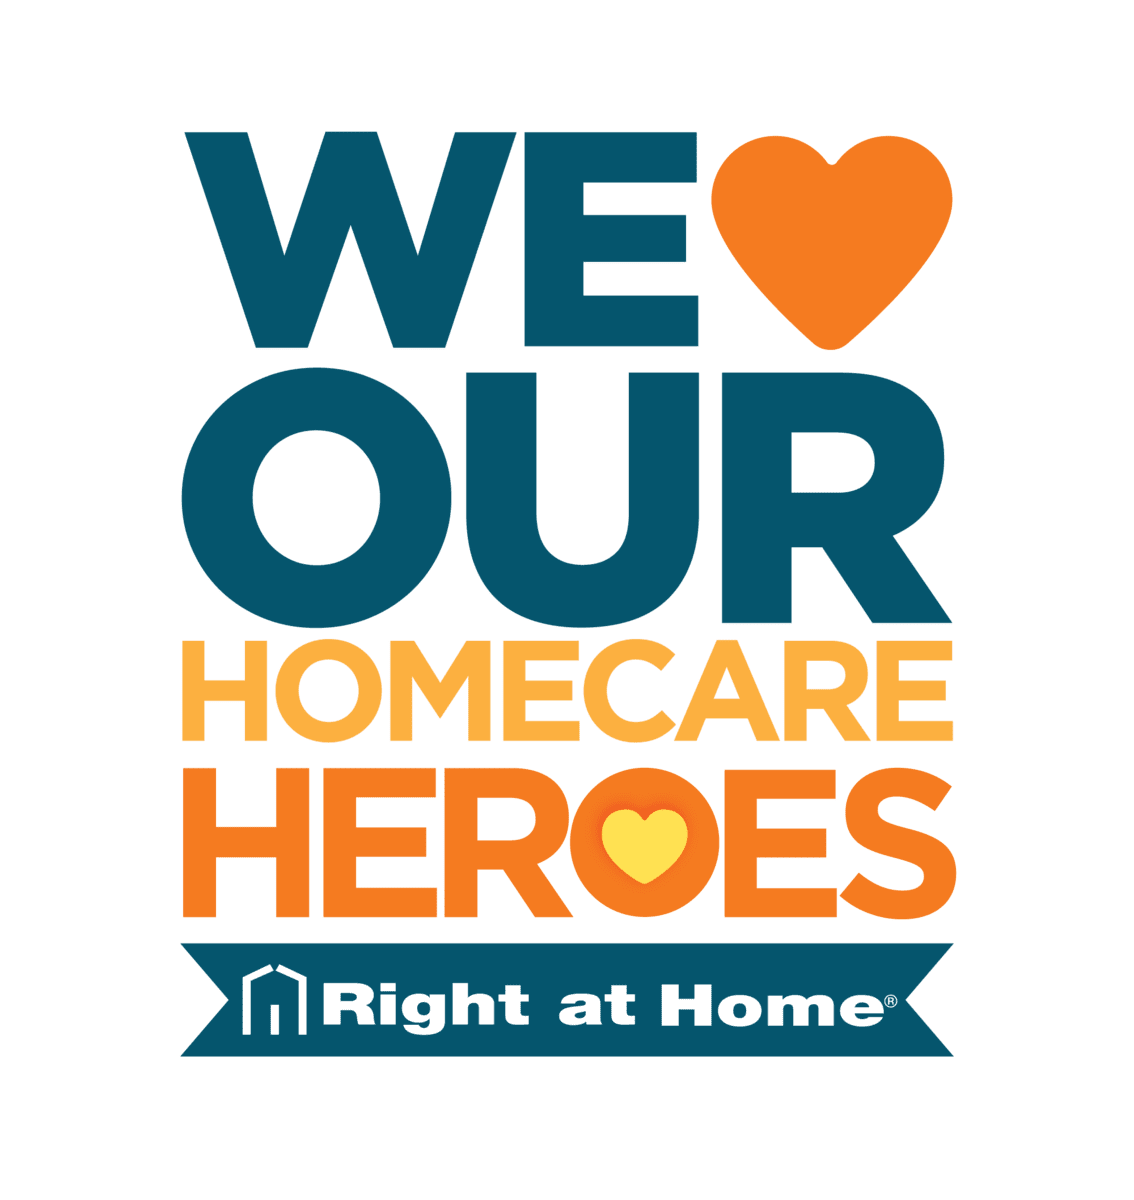 We Love Our Homecare Heroes